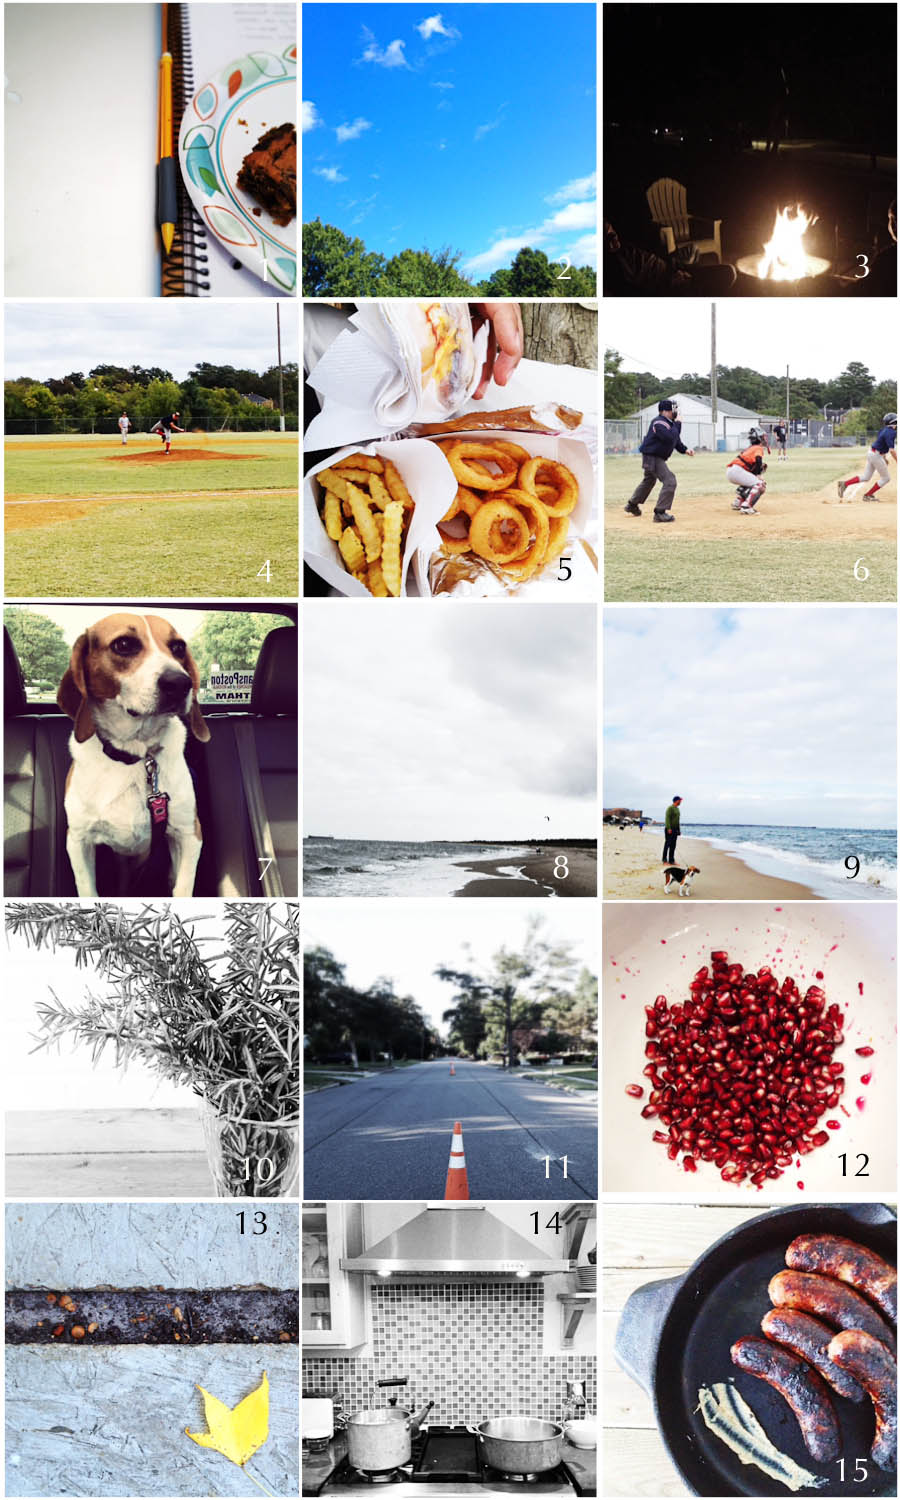 1. Friday meeting   2. September sky   3. Fire pit meeting   4. Starting pitcher   5. Ballpark food   6. At bat   7. Beagle on board     8. Black & White Beach   9. Blowing in the wind   10. Windowsill herbs   11. Tiny project   12. Seeds   13. Autumn leaves   14. Kitchen witchcraft   15. Football food